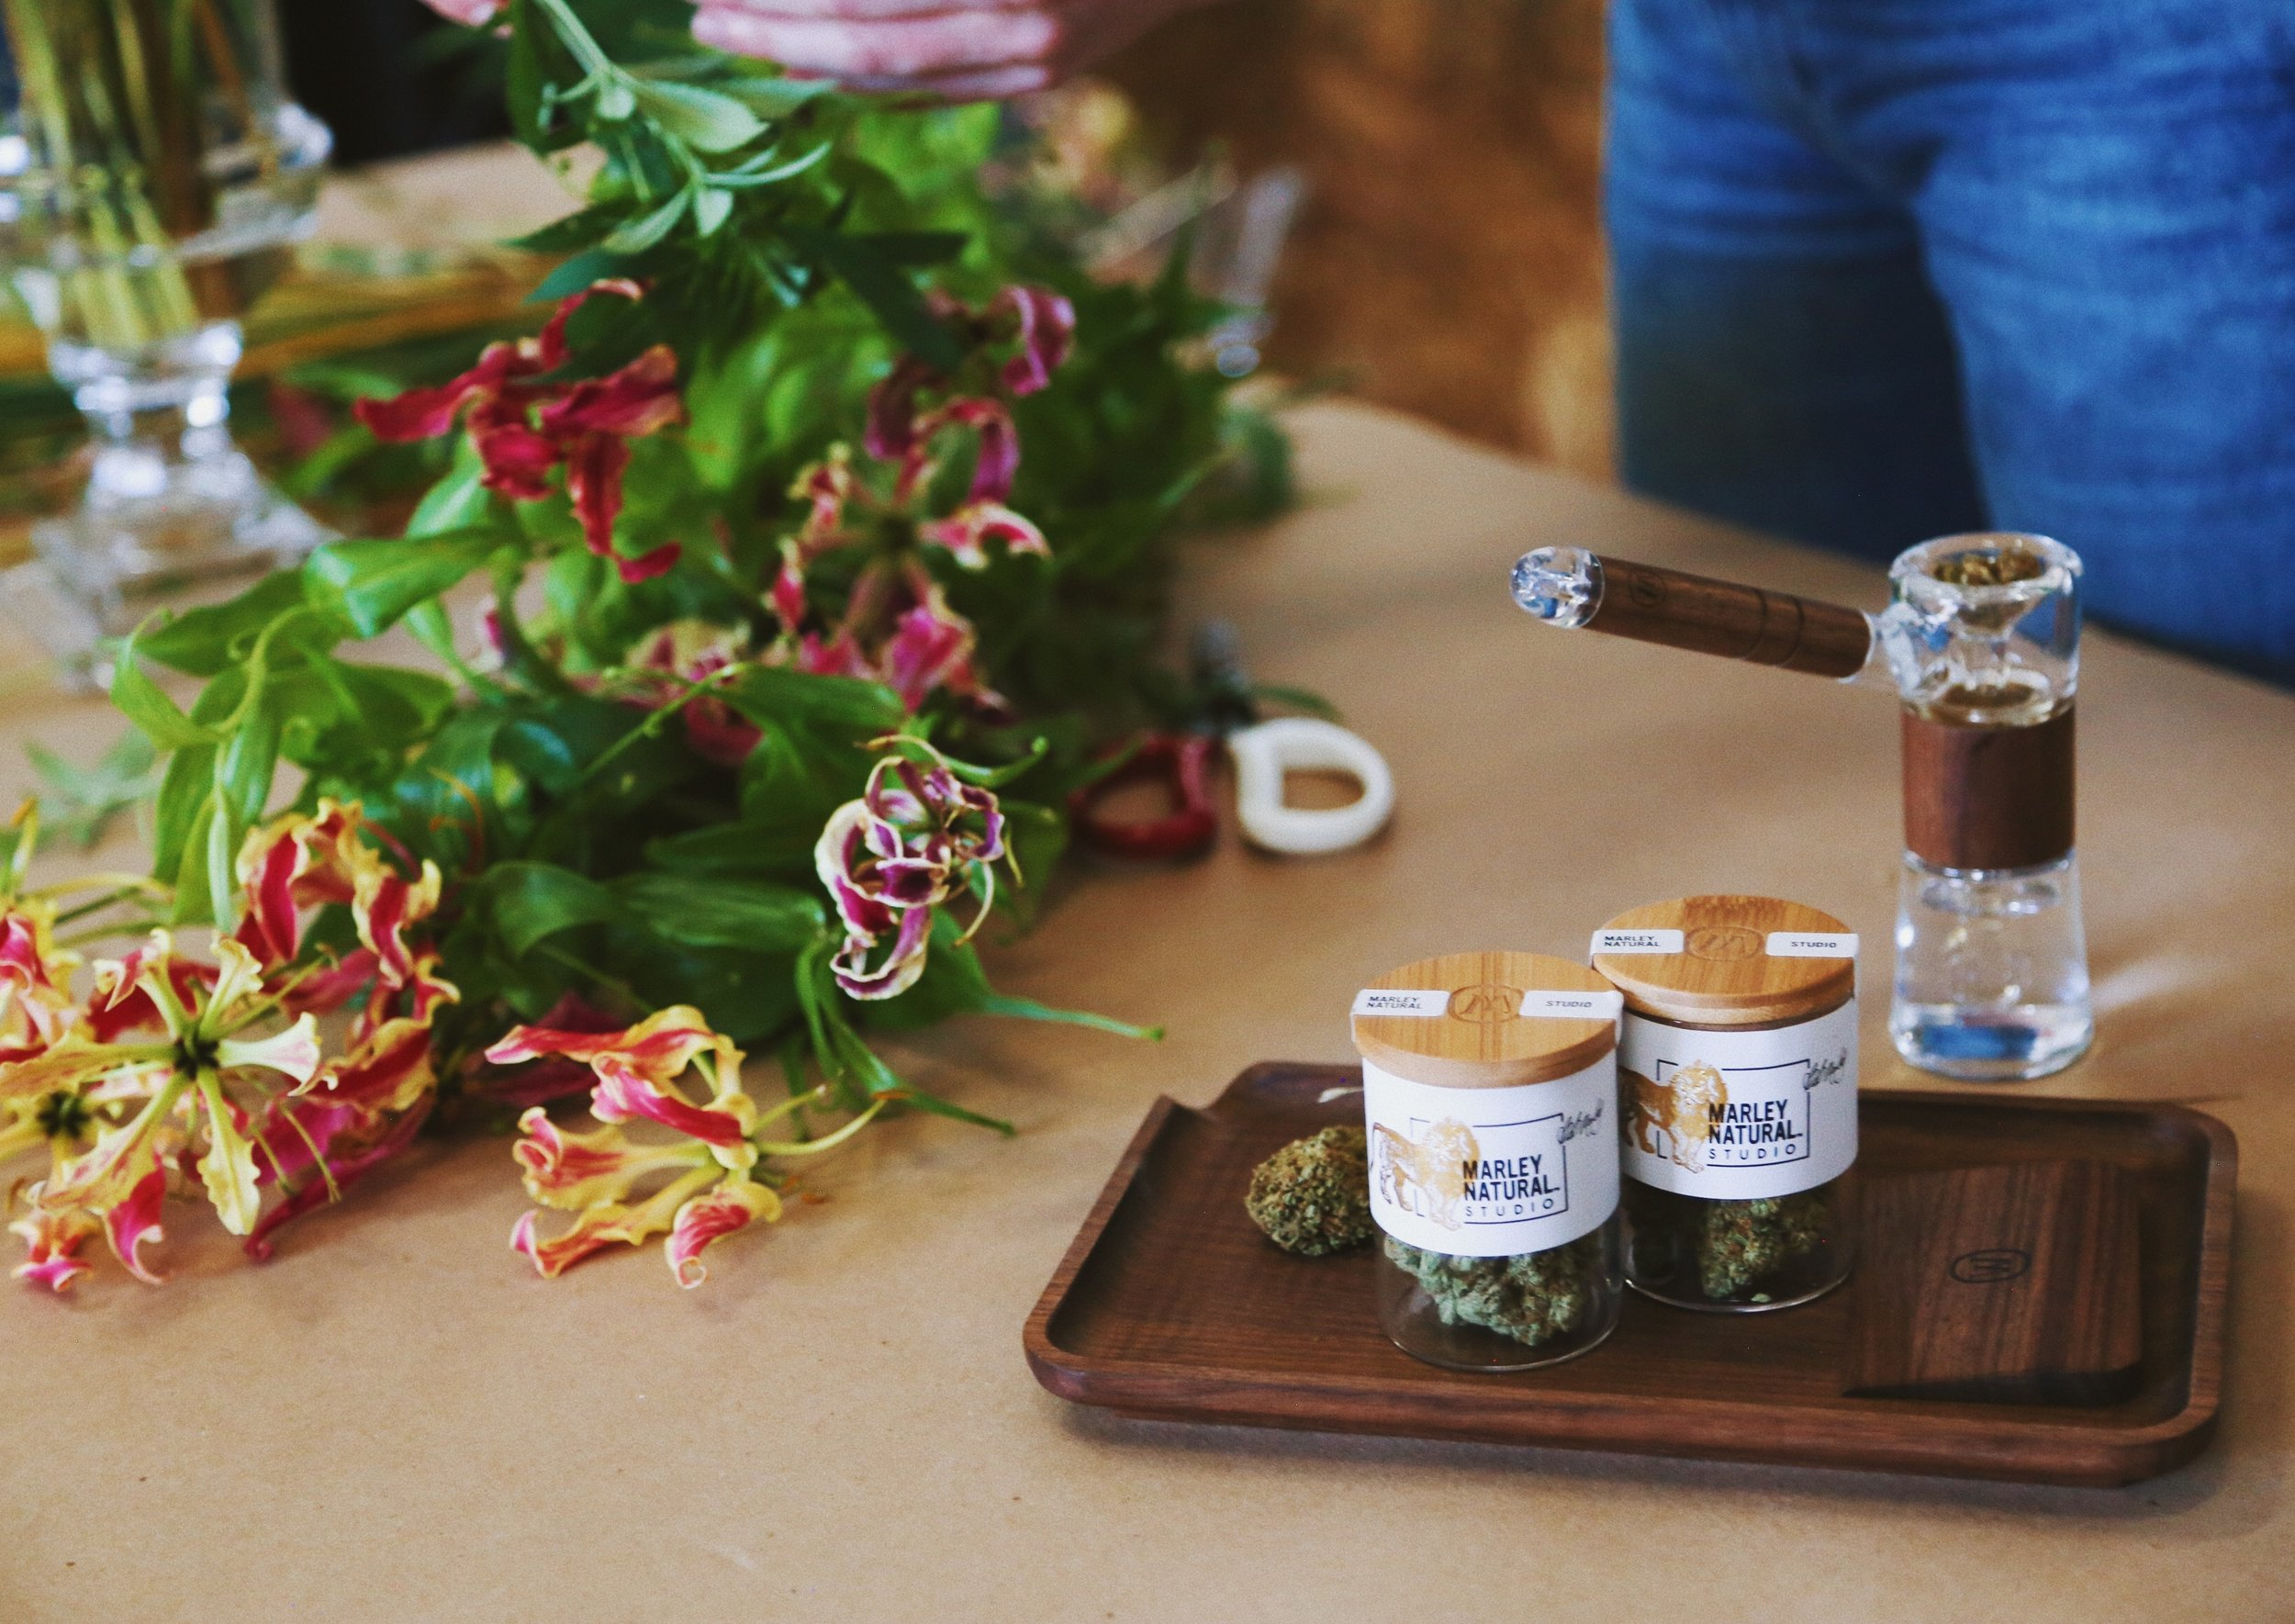 Marley Natural Studio Collection of indoor-grown herb now available at select retailers. Learn more  here